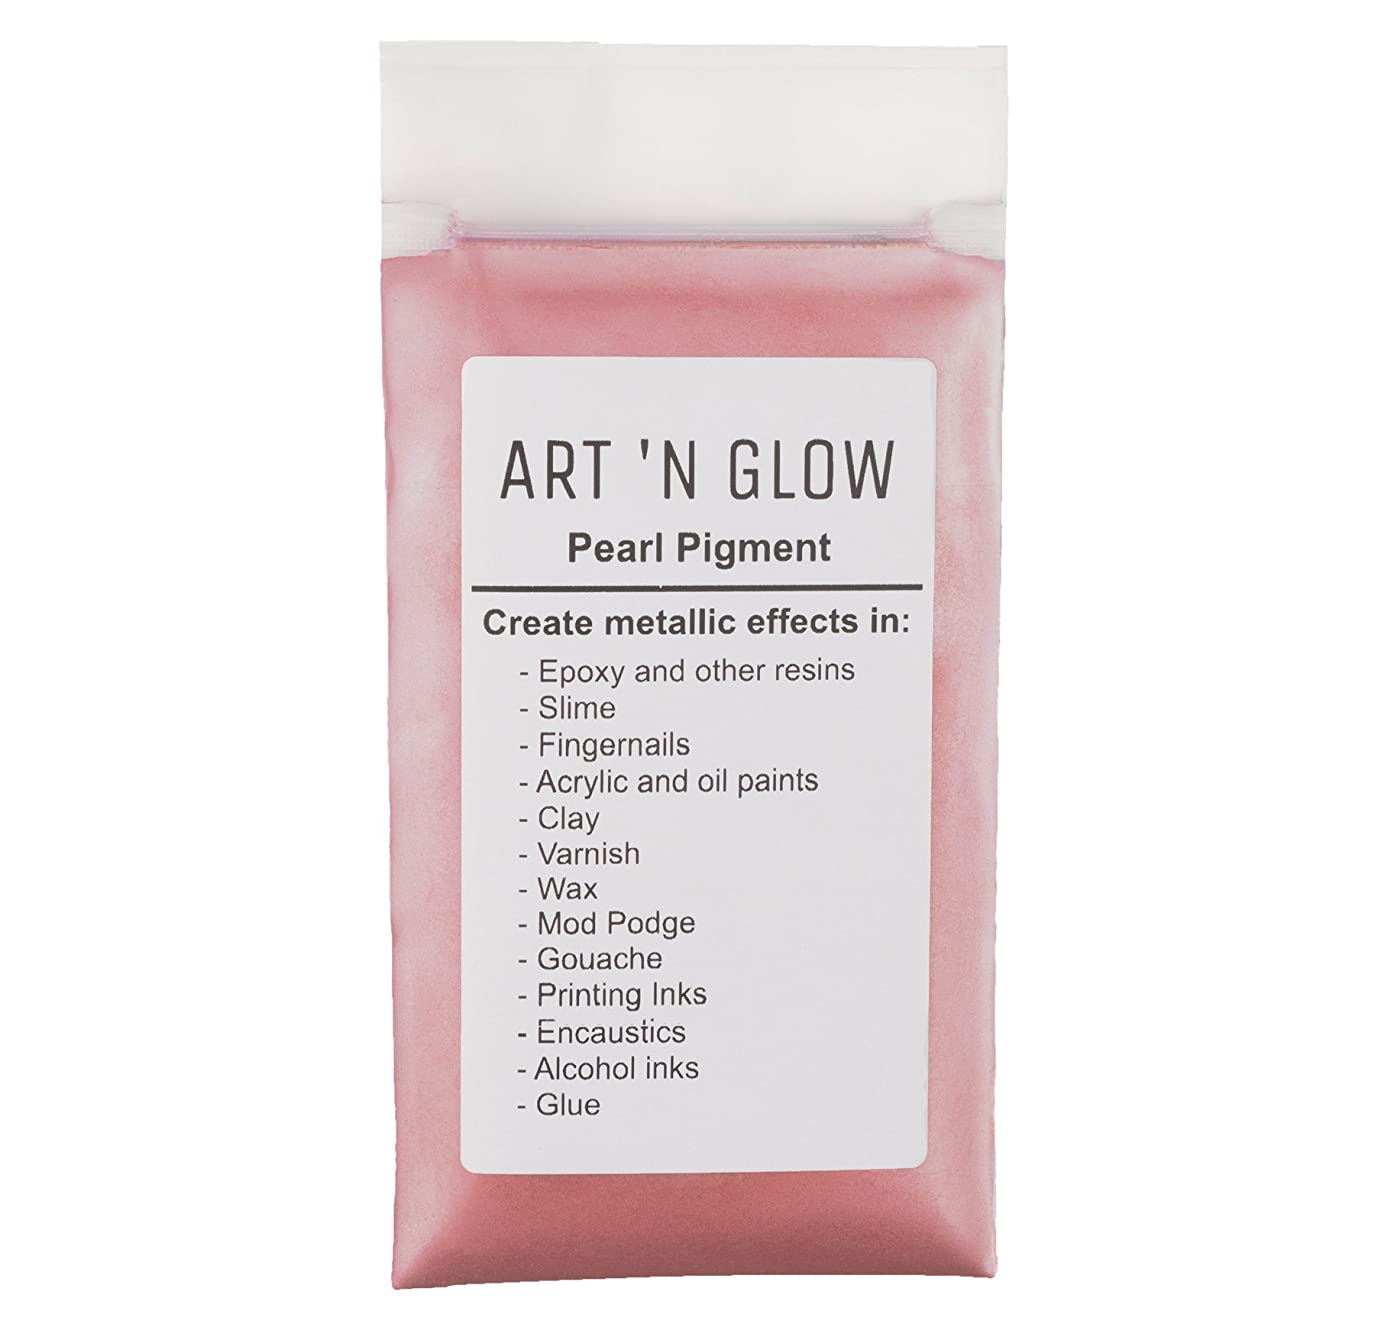 Mica Pearl Pigment Powder (Pink) - (.88 Ounce/25 Grams) - 10+ Colors Available